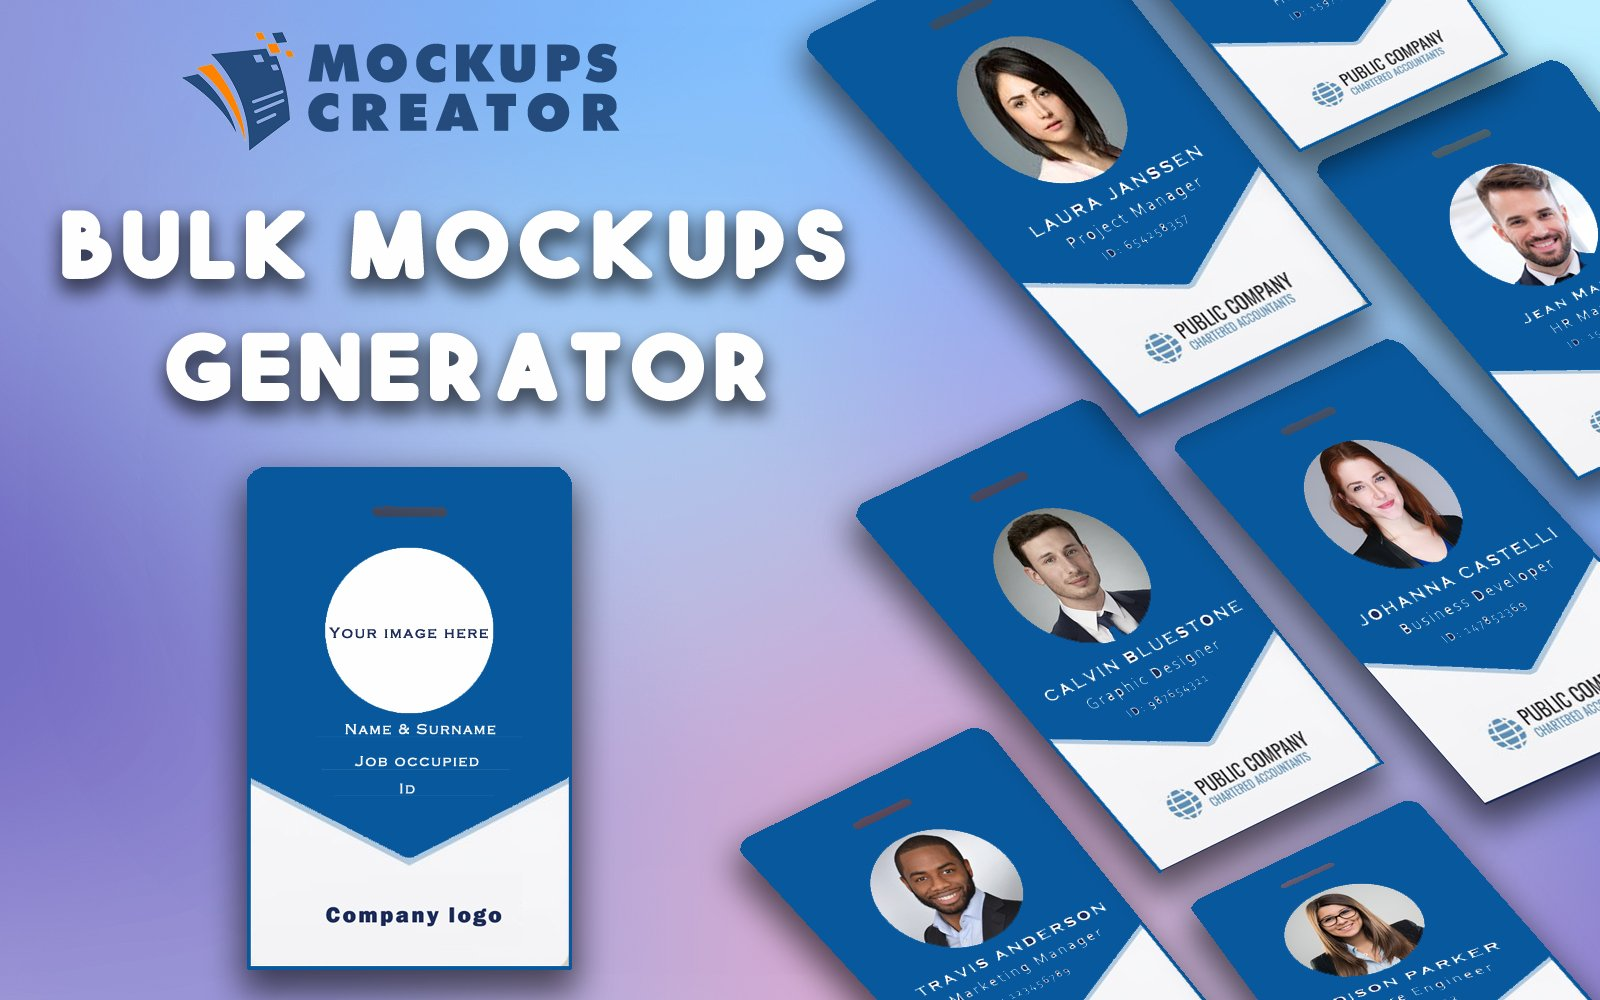 Mockups Creator - Automatic  Mockups Generator WordPress Plugin Plugin WordPress №157939